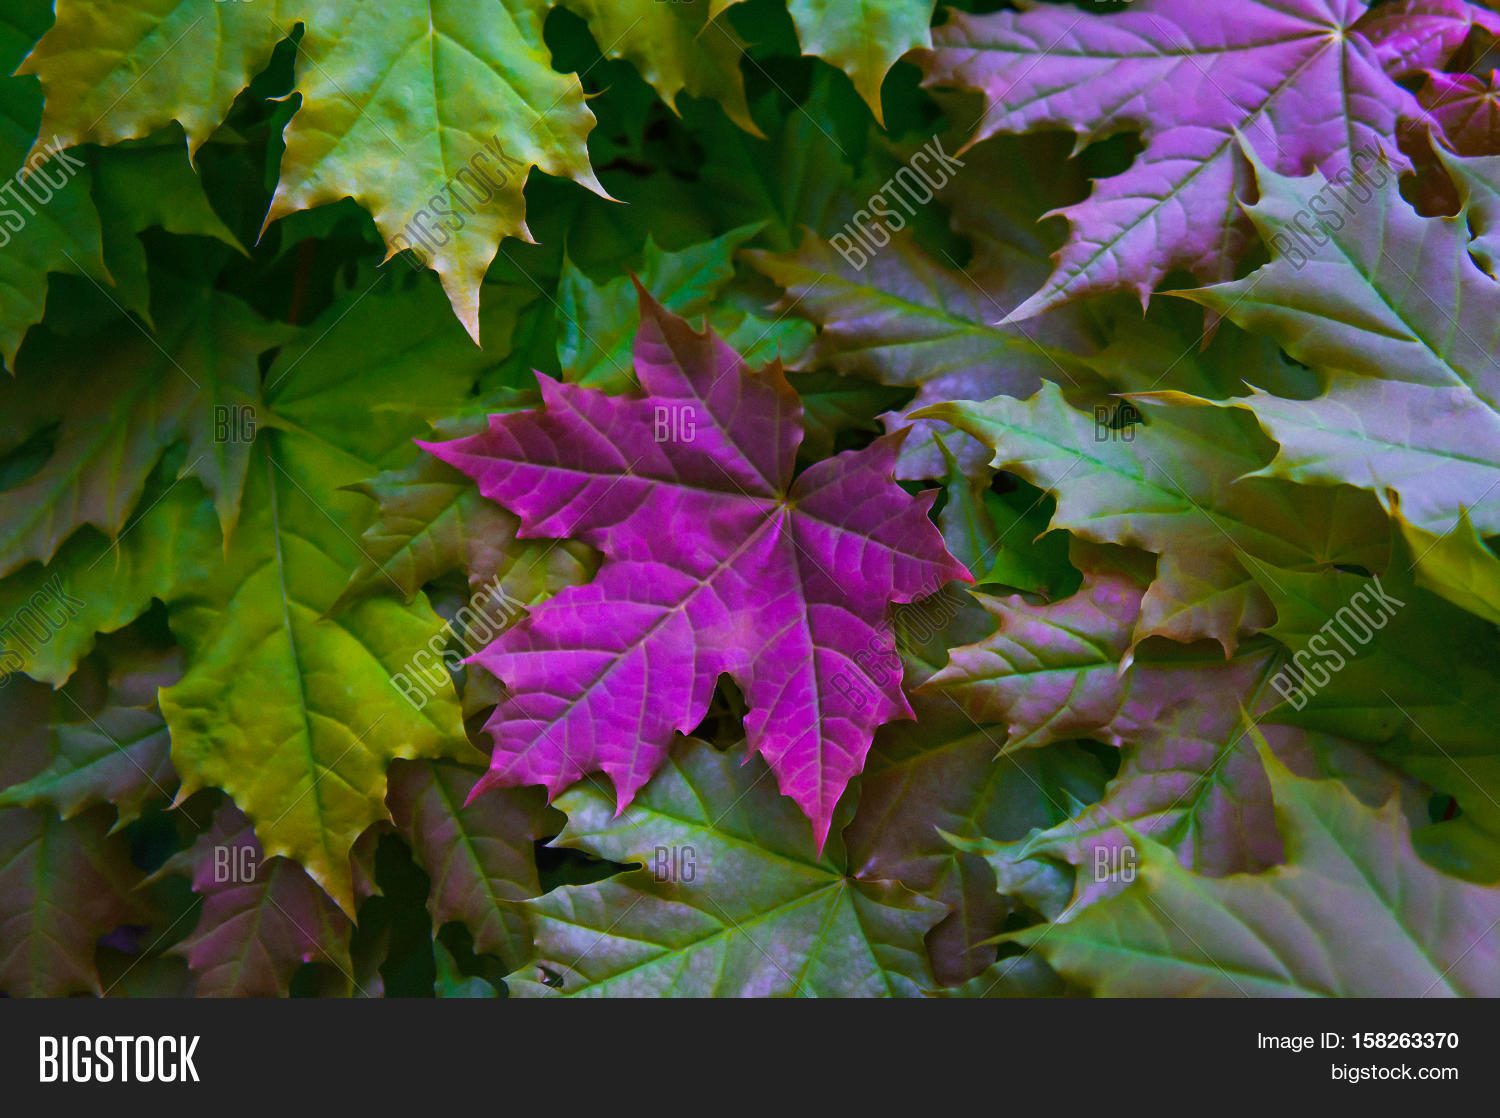 Maple Leaves Yellow Image Photo Free Trial Bigstock